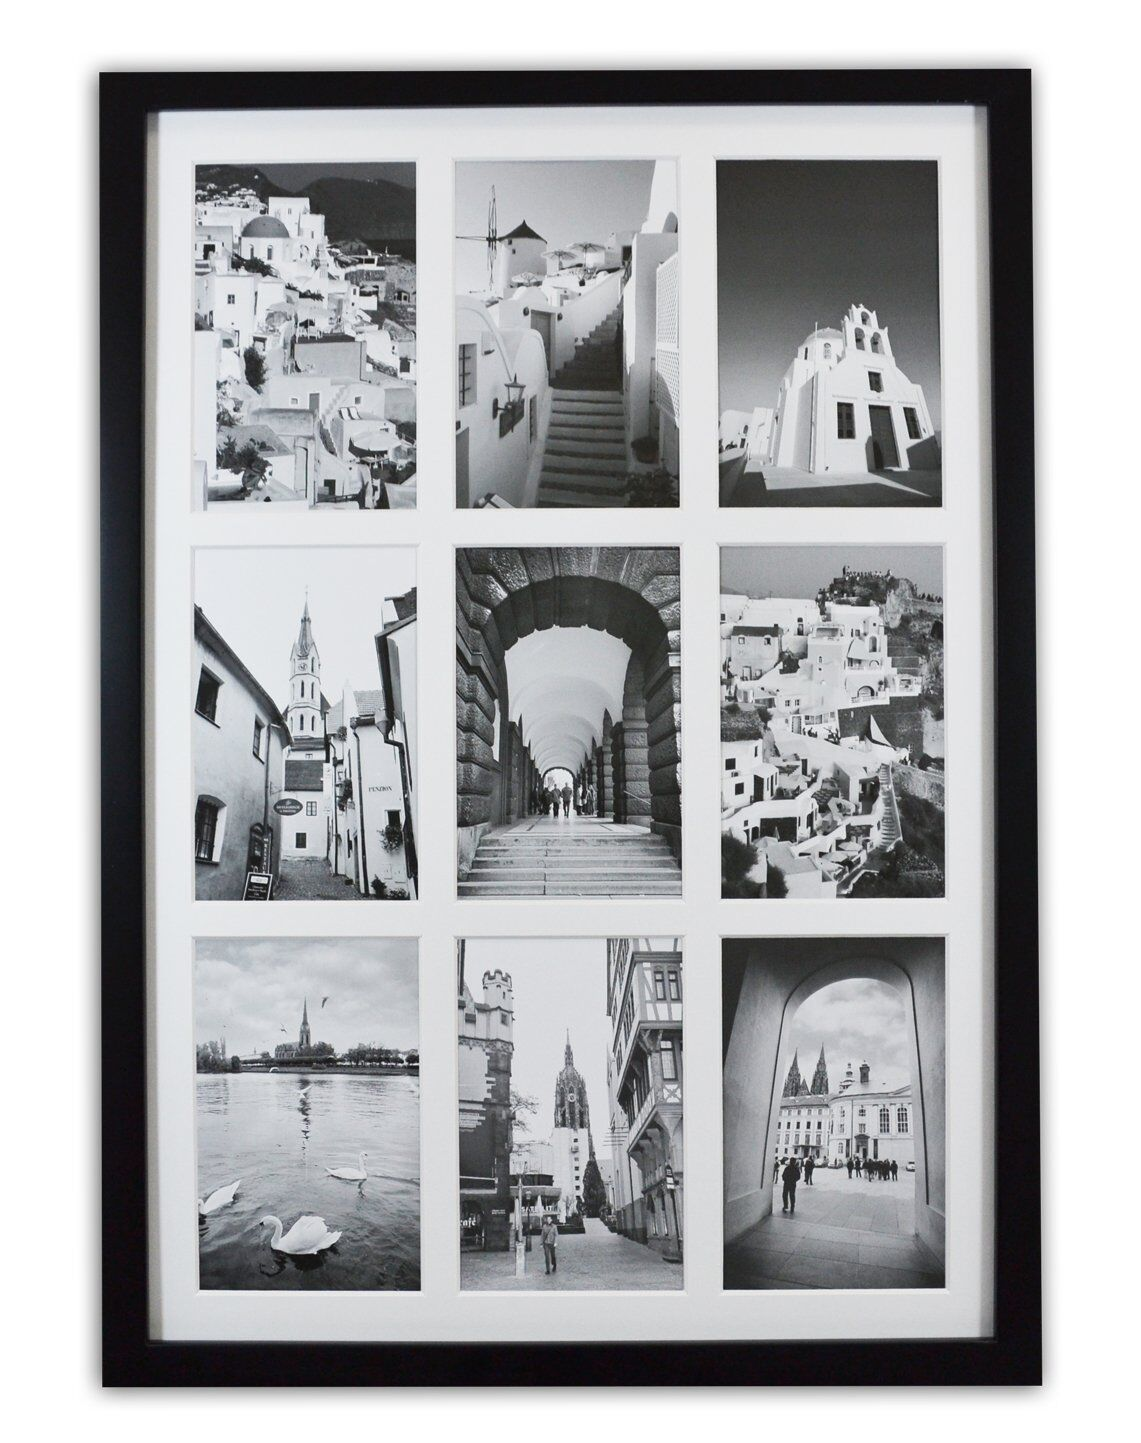 Golden State Art 13.6x19.7 Black Photo Wood Collage Frame With Real ...